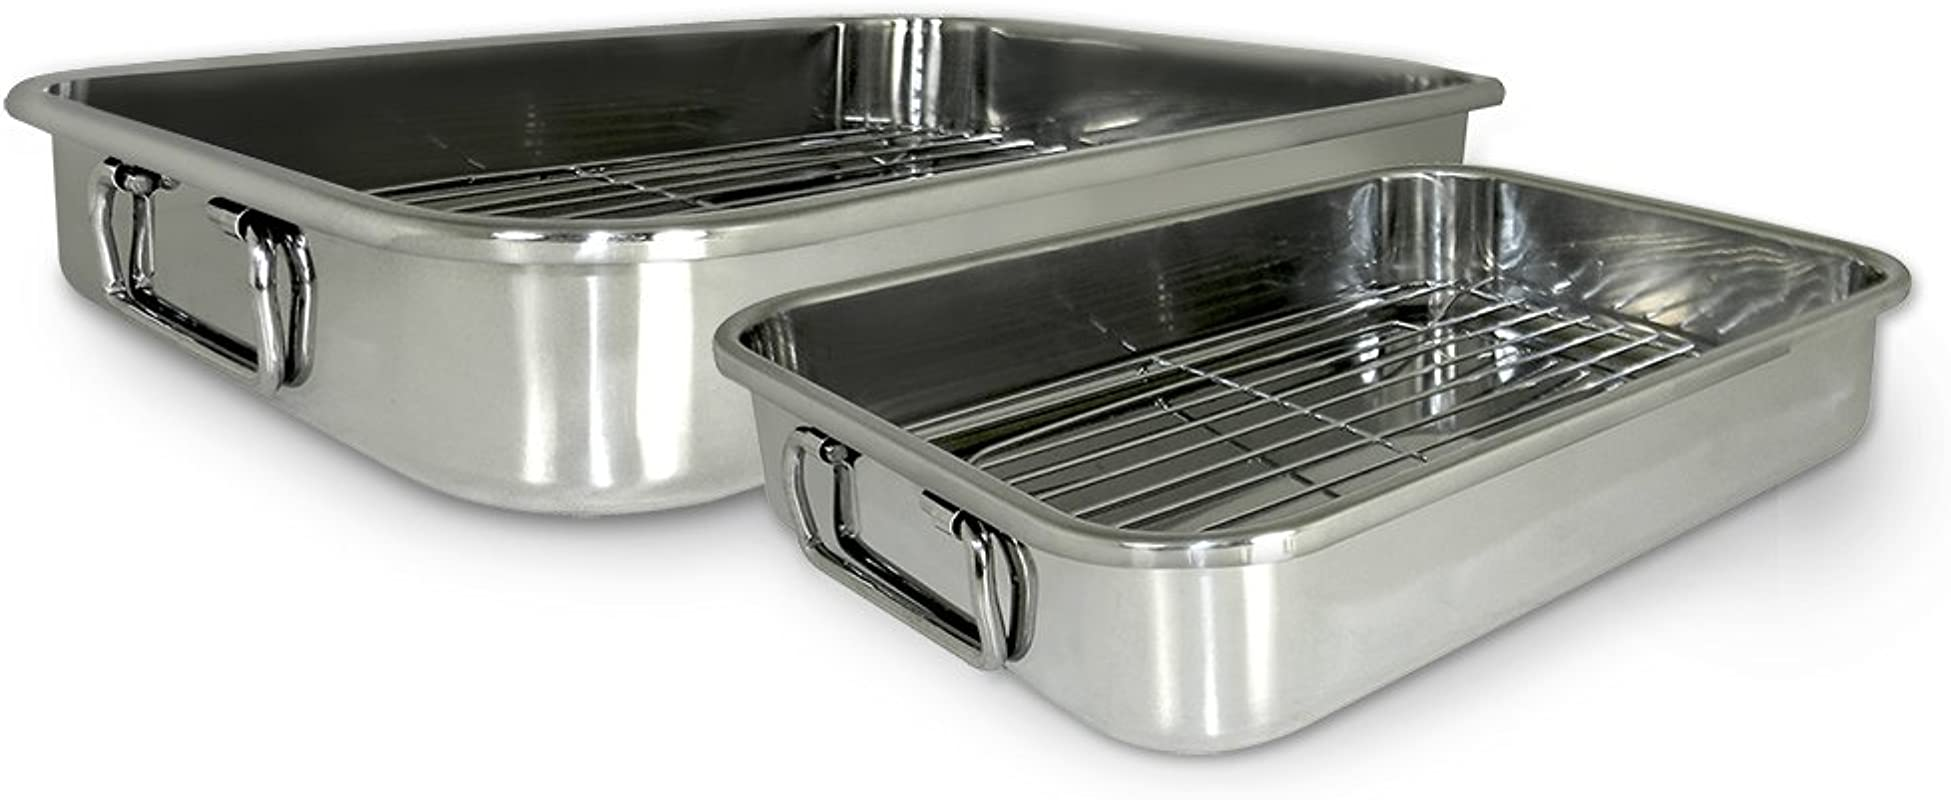 Cook Pro 561 4 Piece All In 1 Lasagna And Roasting Pan